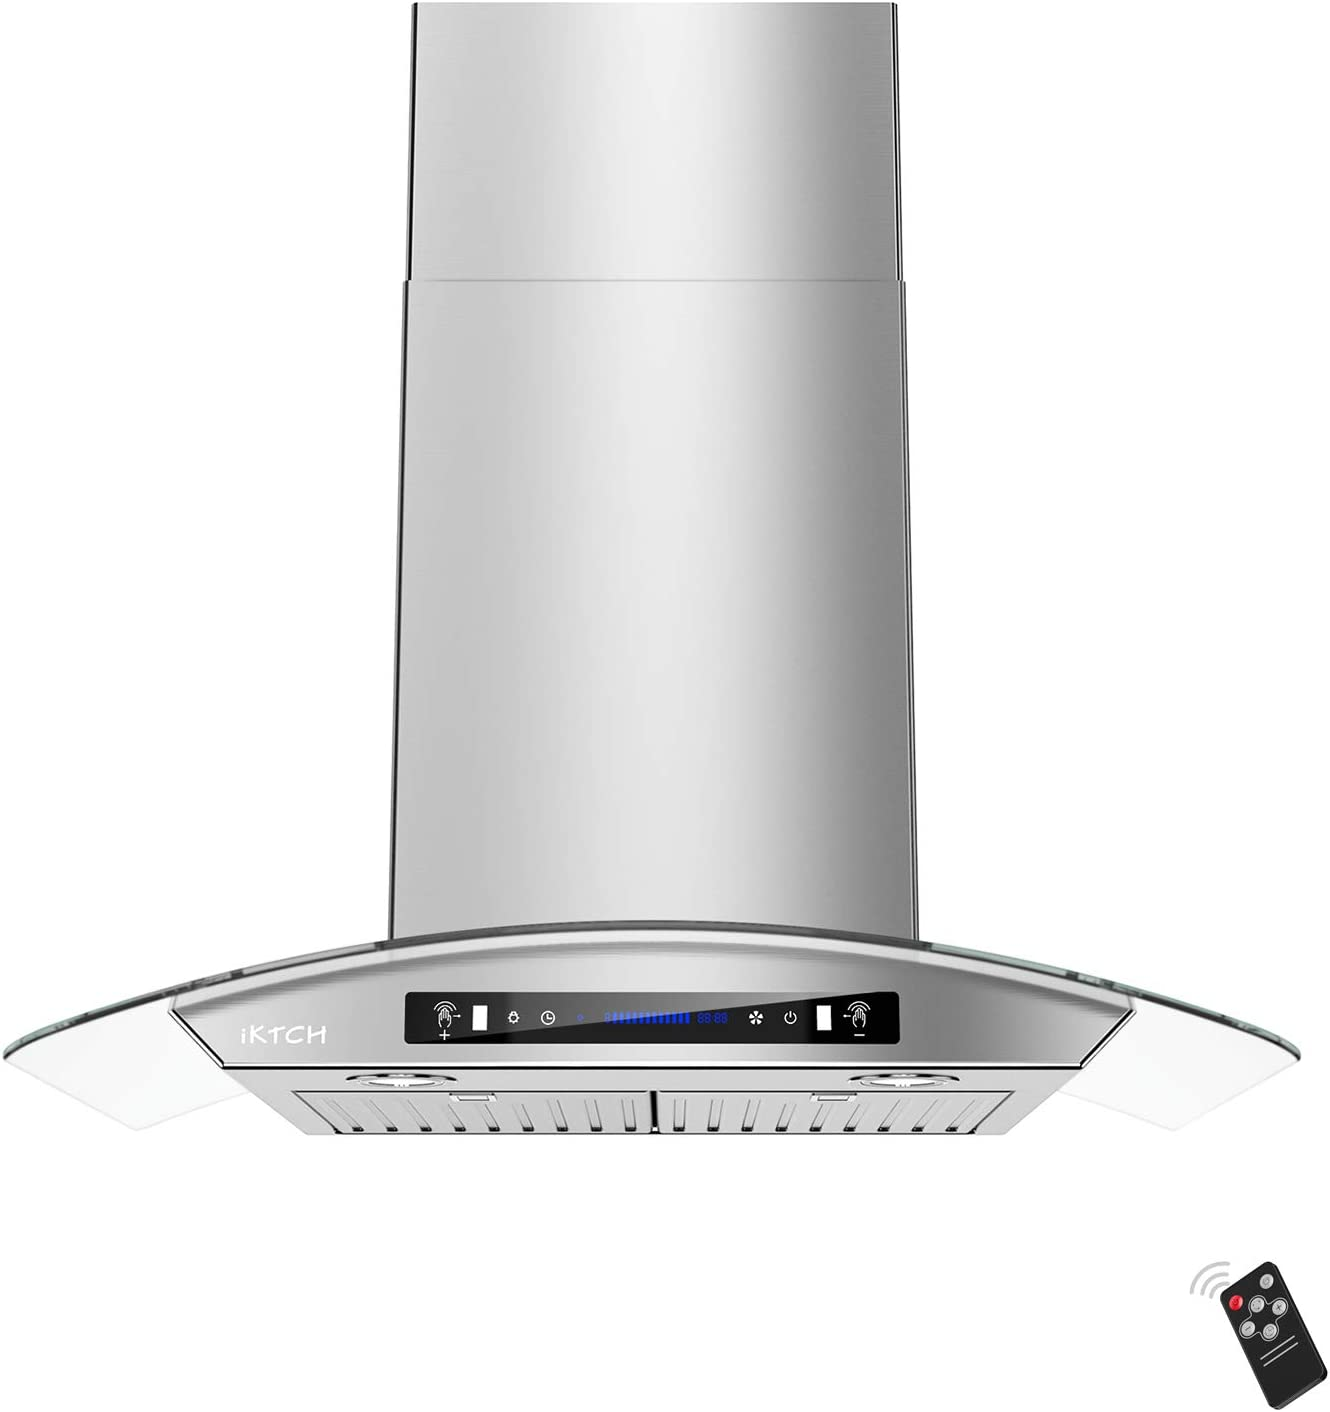 IKTCH 36-inch Wall Mount Range Hood Tempered Glass 900 CFM, Kitchen Chimney Vent Stainless Steel with Gesture Sensing & Touch Control Switch Panel, 2 Pcs Adjustable Lights